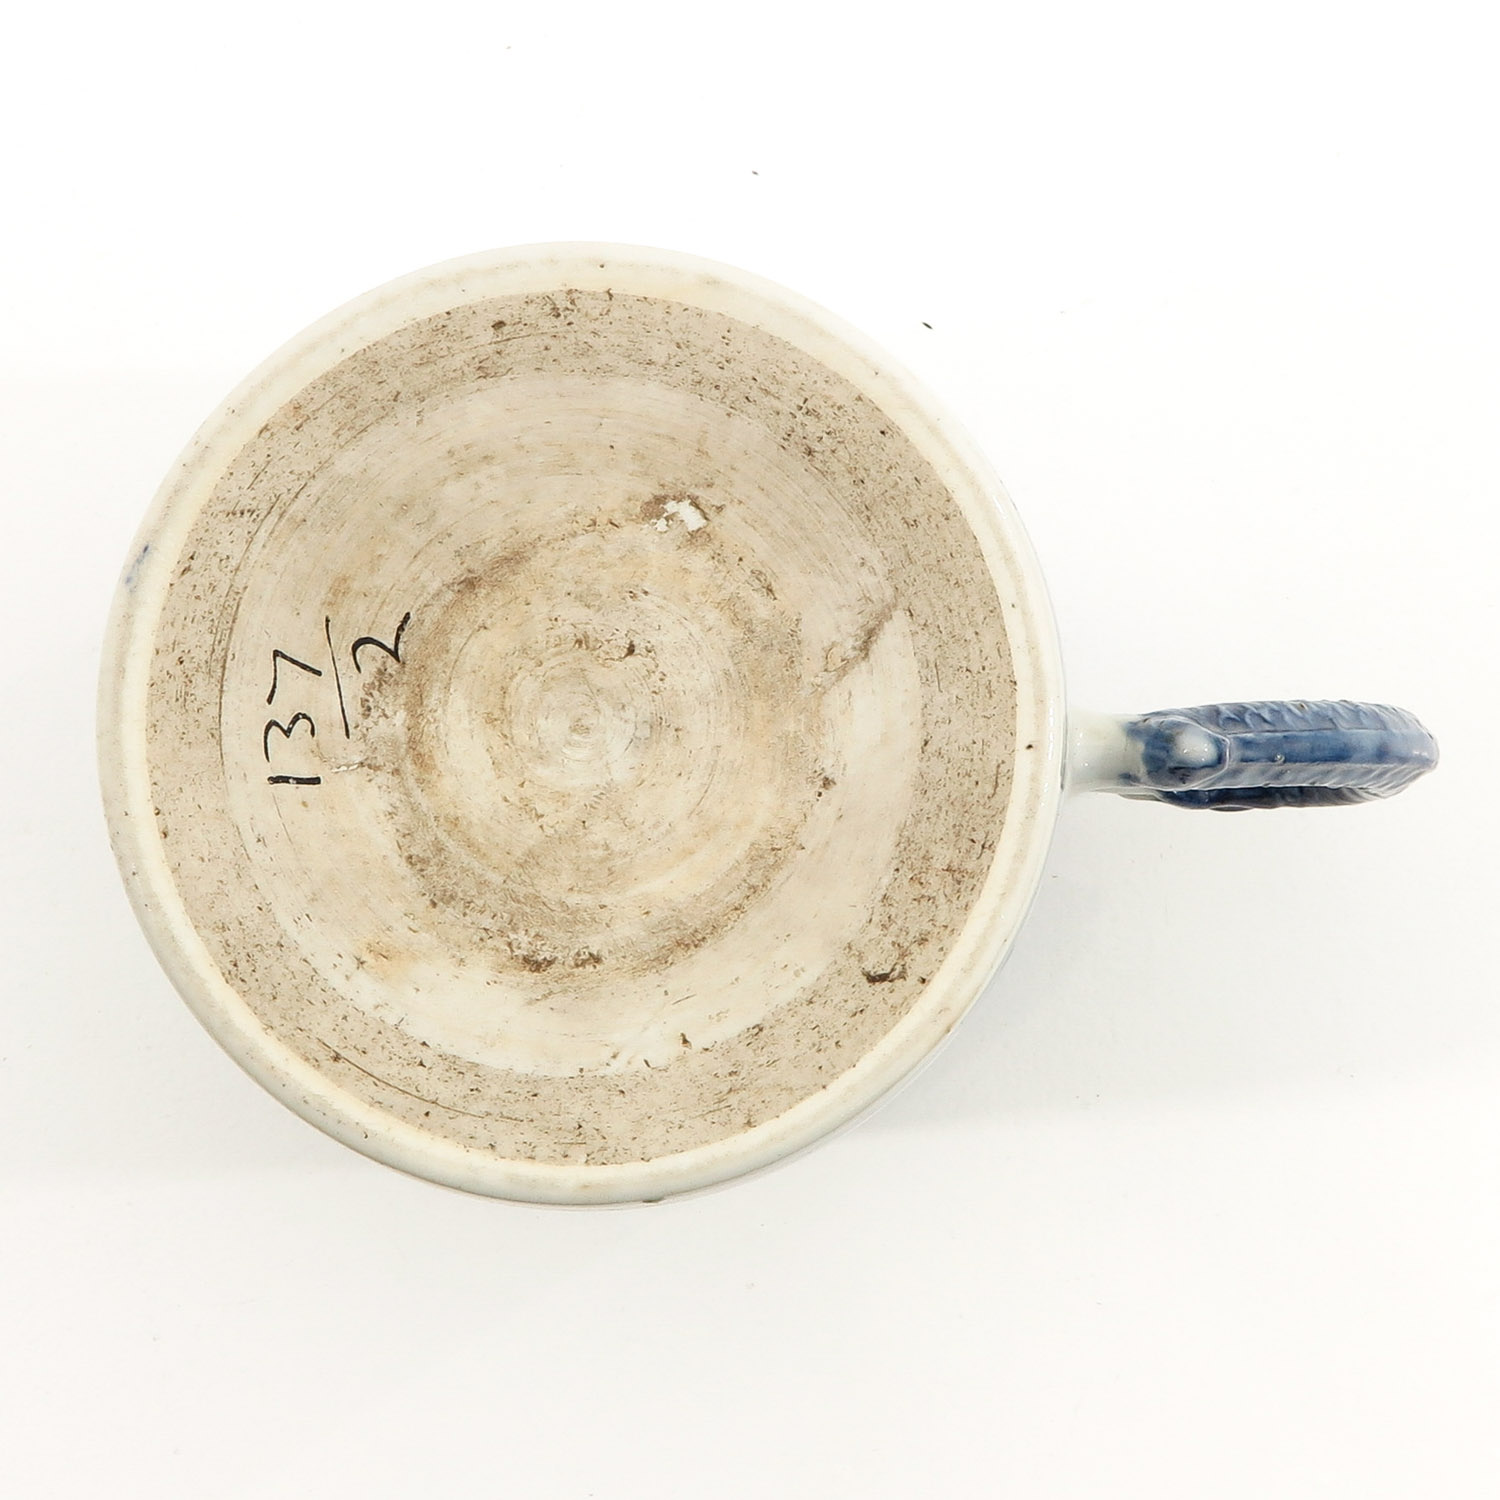 A Polychrome Decor Mug - Image 6 of 10